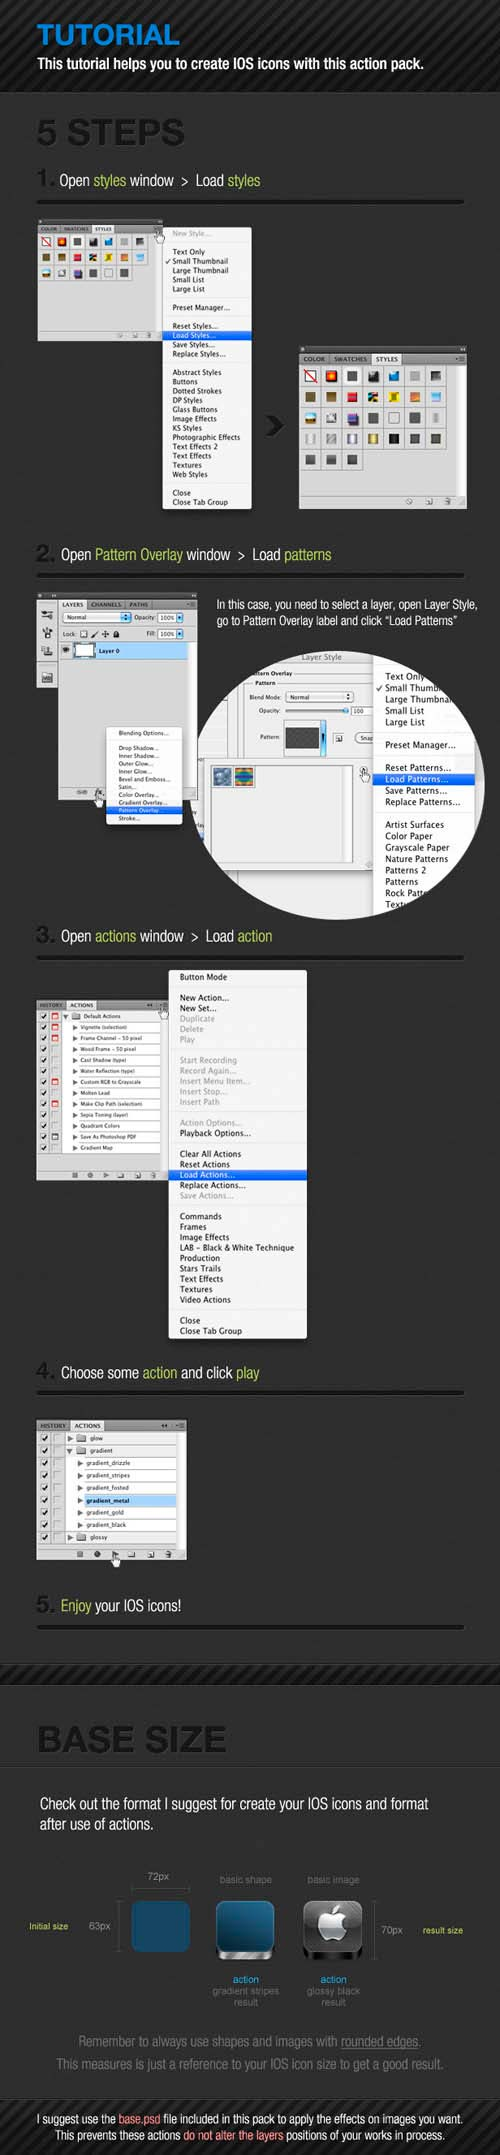 fotoshop-action-icons-create